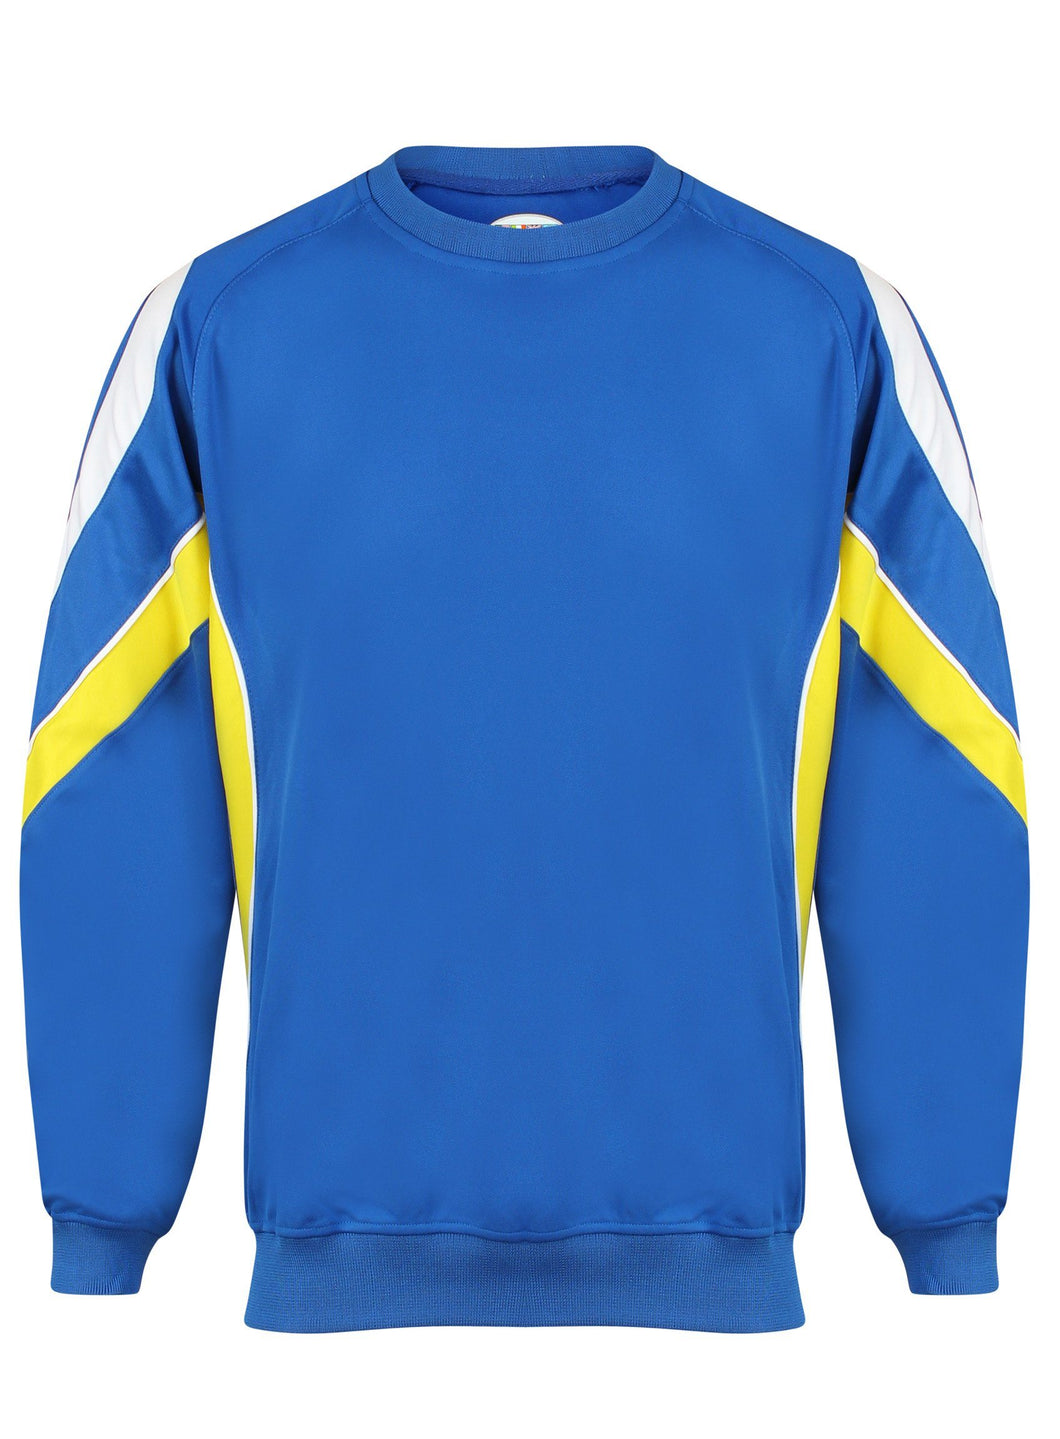 Rio Sweatshirt Kids Gazelle Sports UK Yes XSJ/26 Col A) Royal/ Yellow/ White